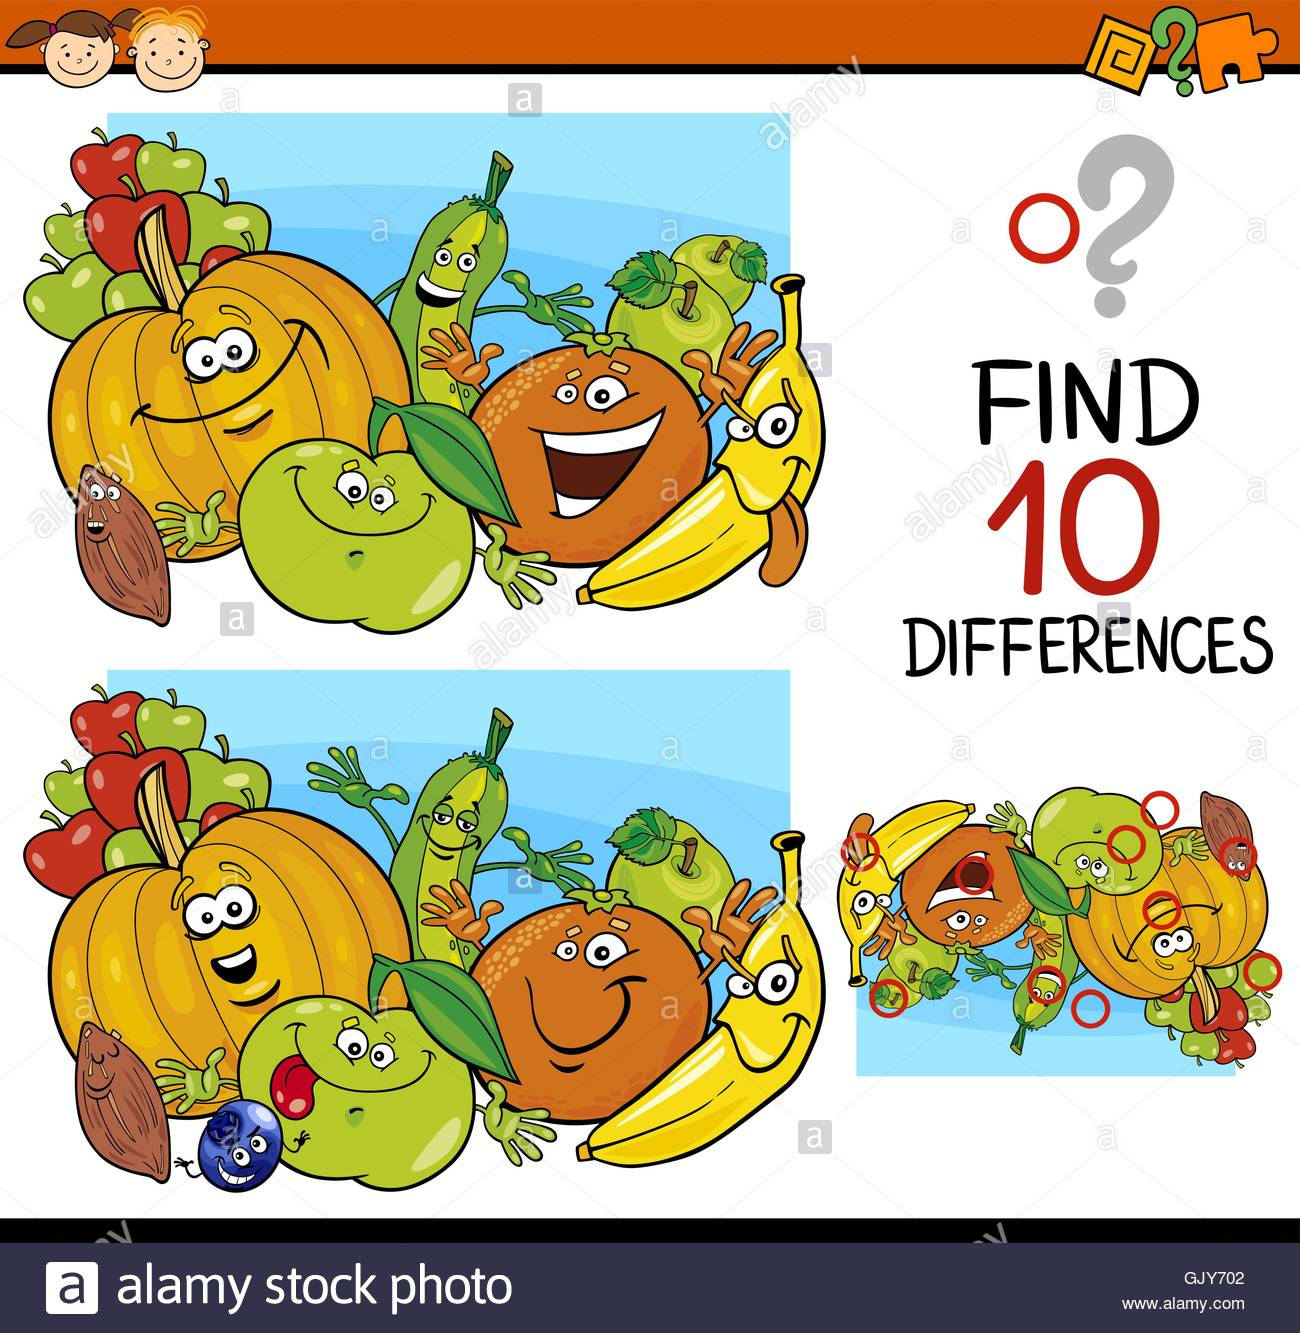 Finding Differences Game Cartoon Stock Vector Art concernant Chercher Les Differences